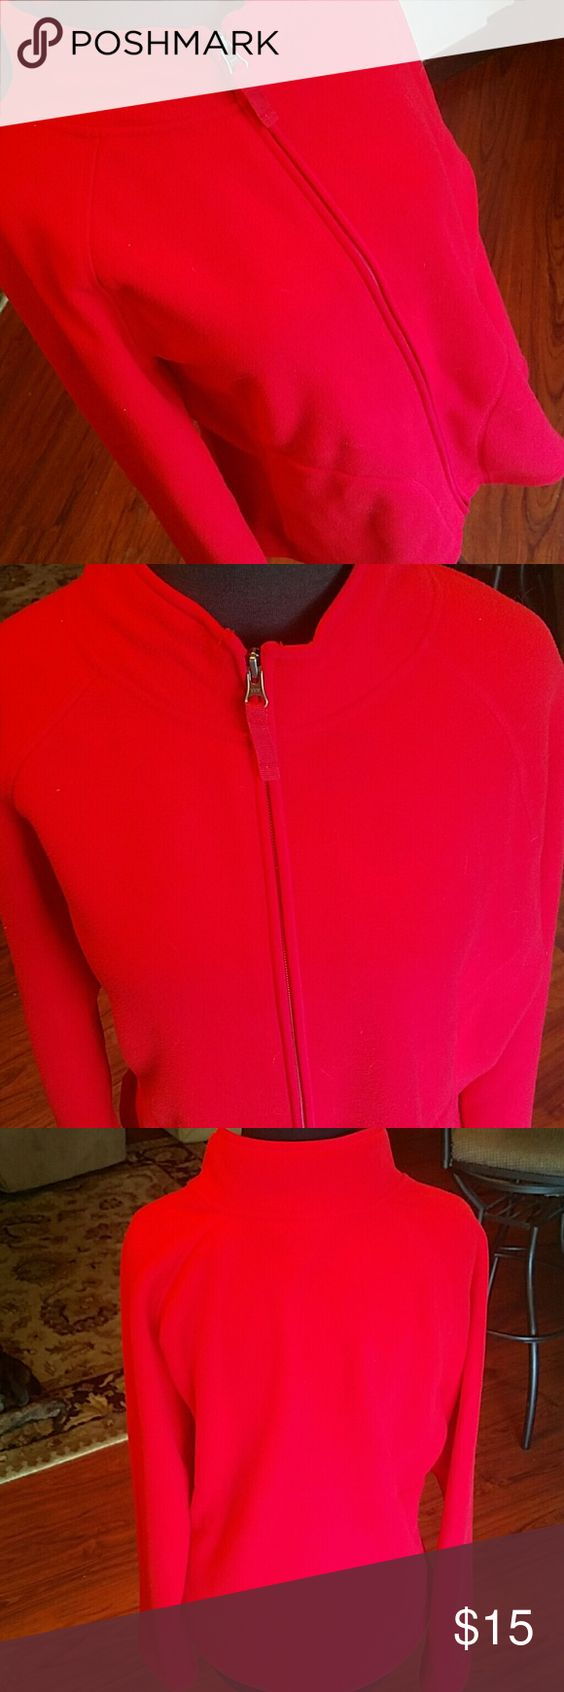 Red Zip Up Fleece Red fleece, great condition. Super soft and warm. Size Large. Merona Tops Sweatshirts & Hoodies